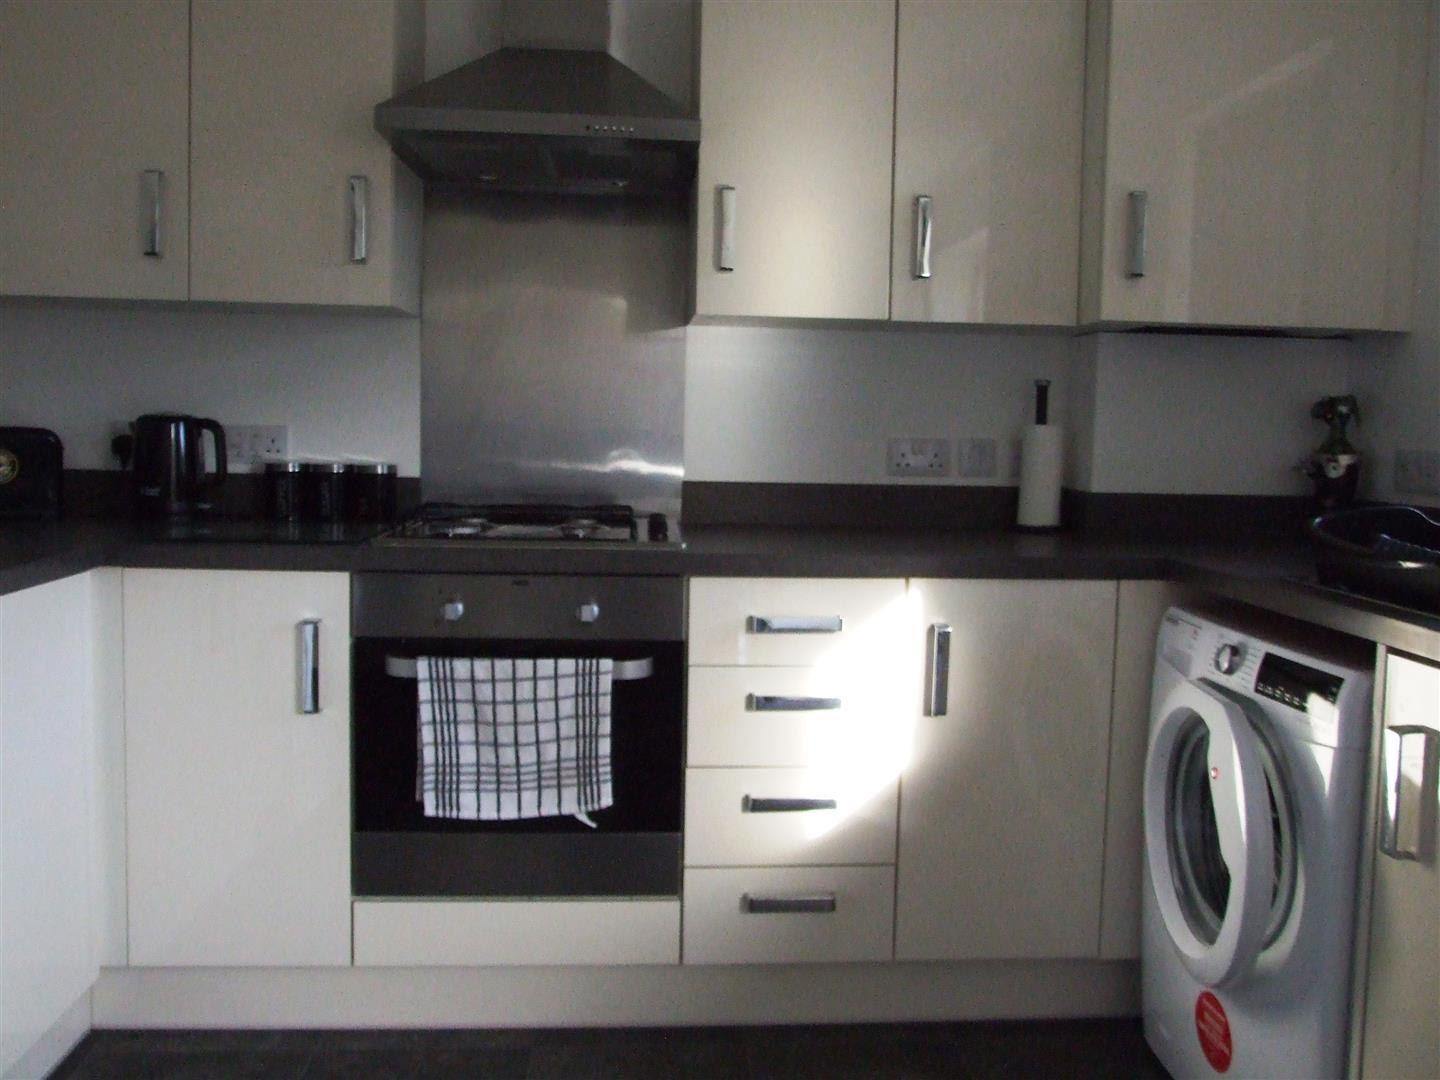 3 bed house to rent in Long Sutton, PE12 9GZ  - Property Image 5